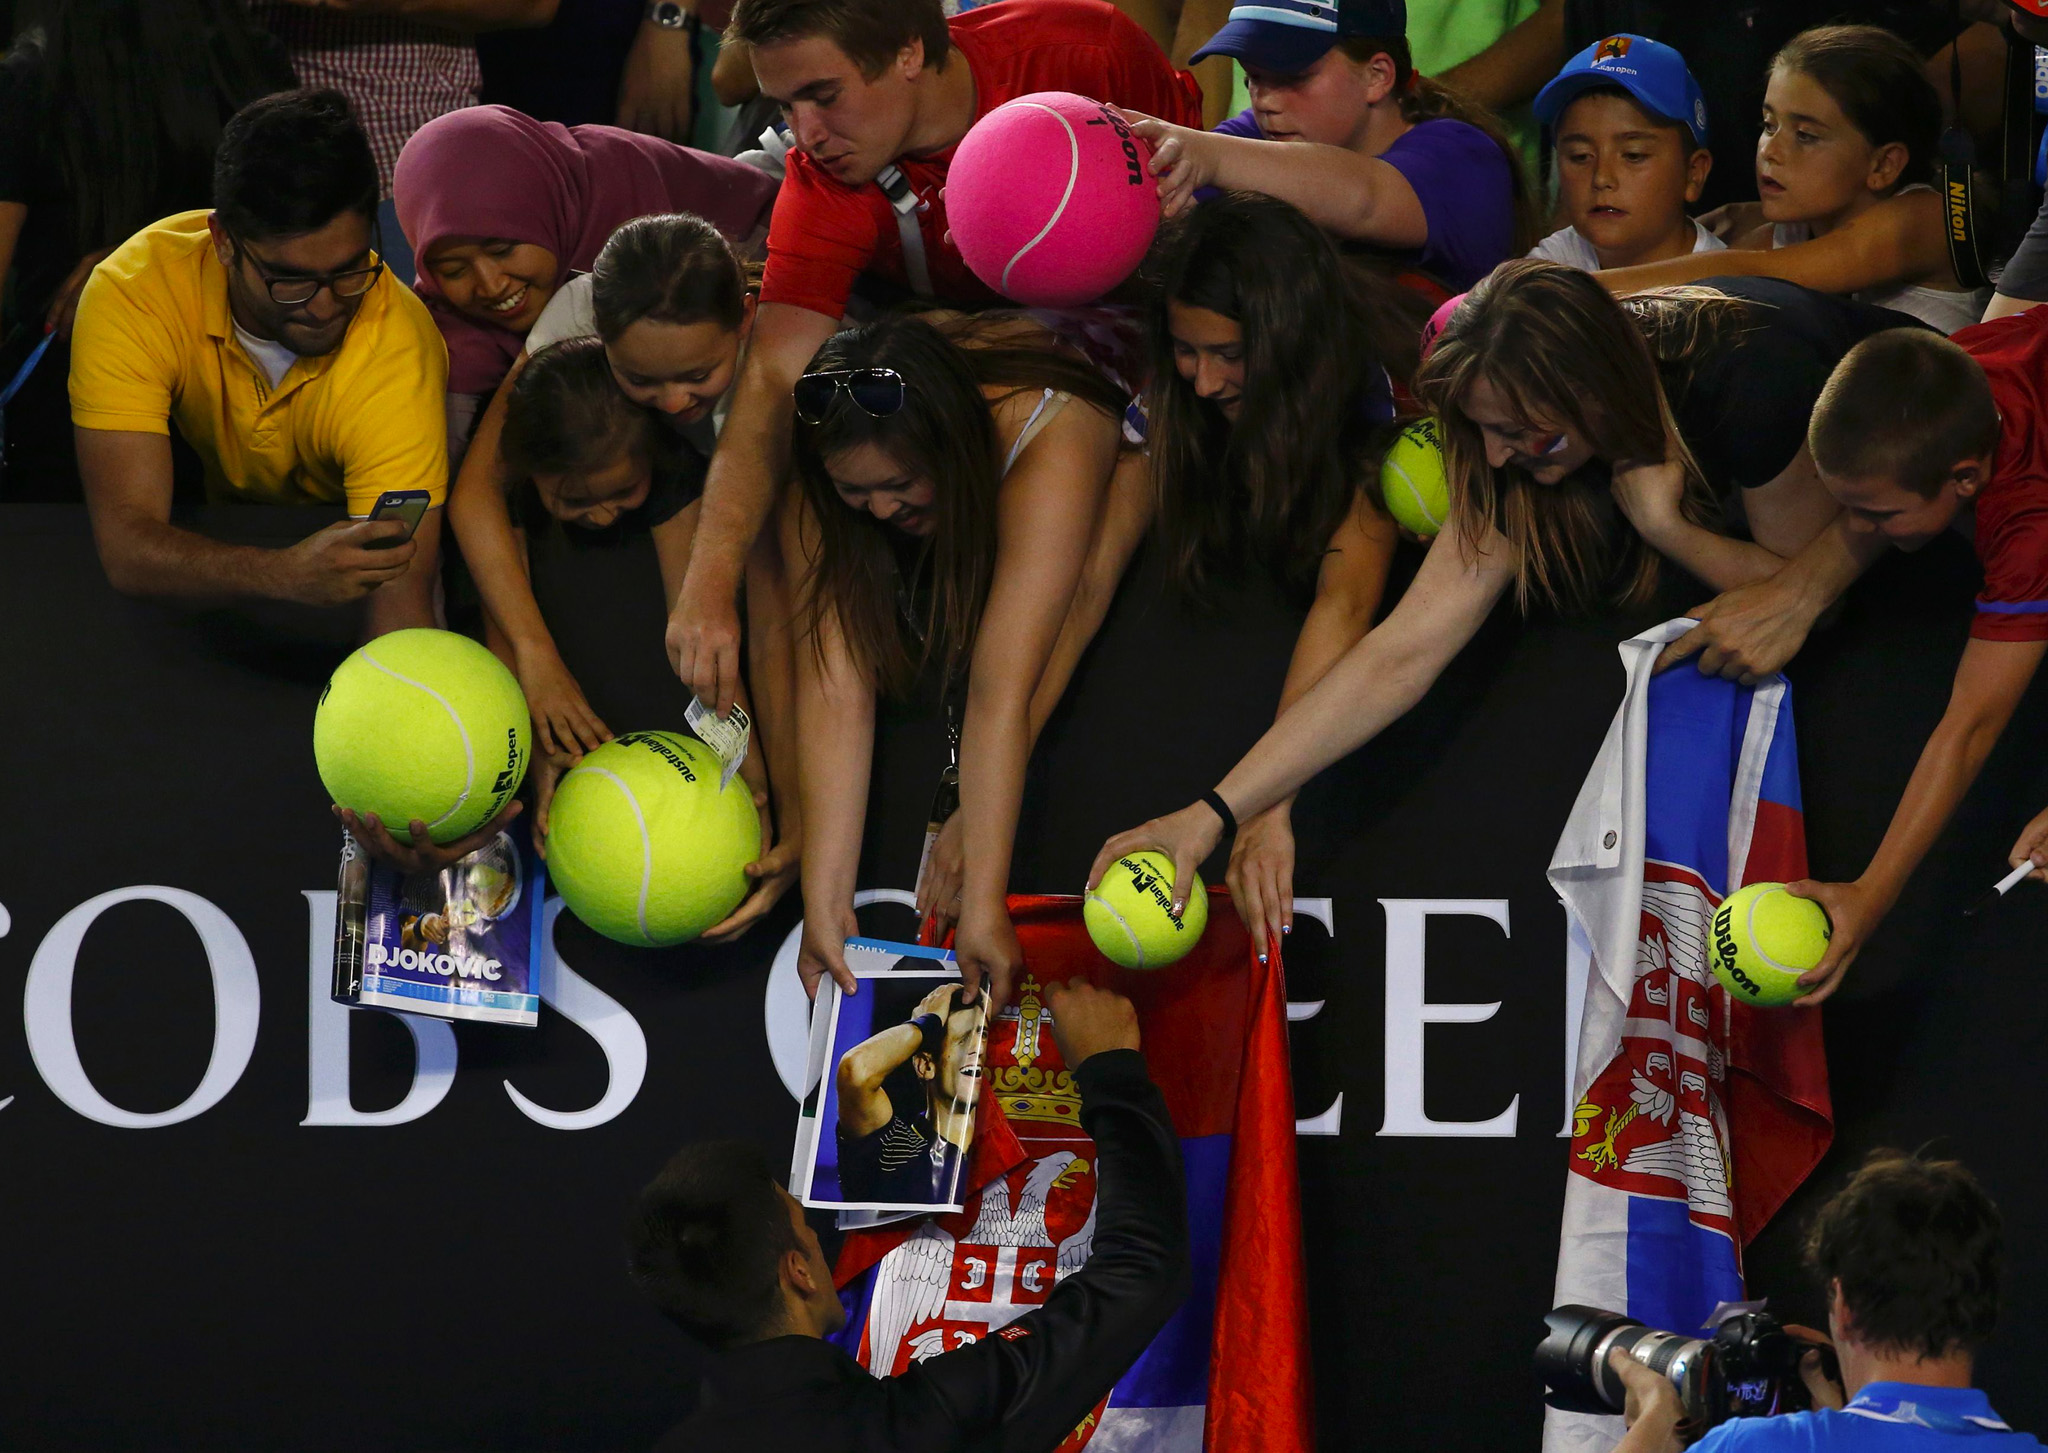 Novak Djokovic of Serbia signs autographs after his men's singles match against Lukas Lacko of Slovakia at the Australian Open 2014 tennis tournament in Melbourne